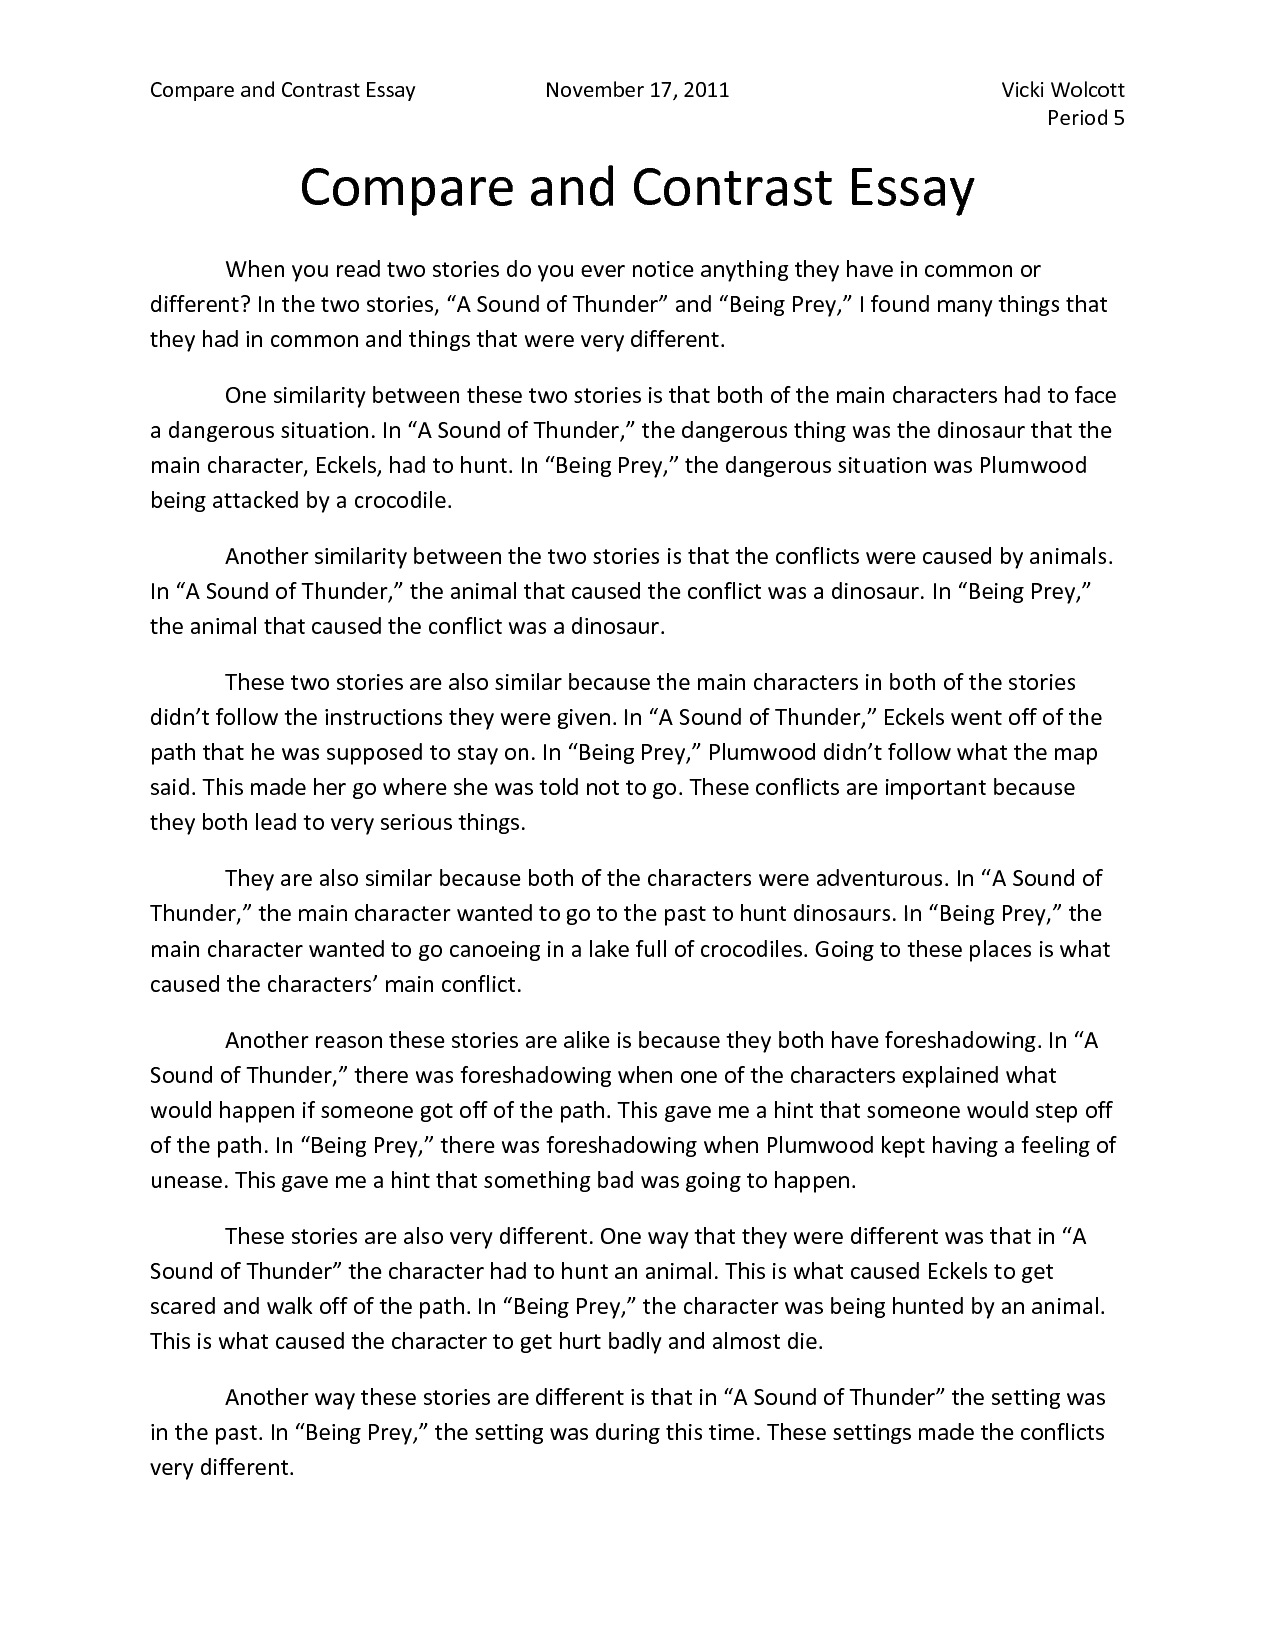 compare and contrast essay between sundry This handout will help you determine if an assignment is asking for comparing and contrasting, generate similarities and differences, and decide a focus  there are many different ways to organize a comparison/contrast essay here are two: subject-by-subject.